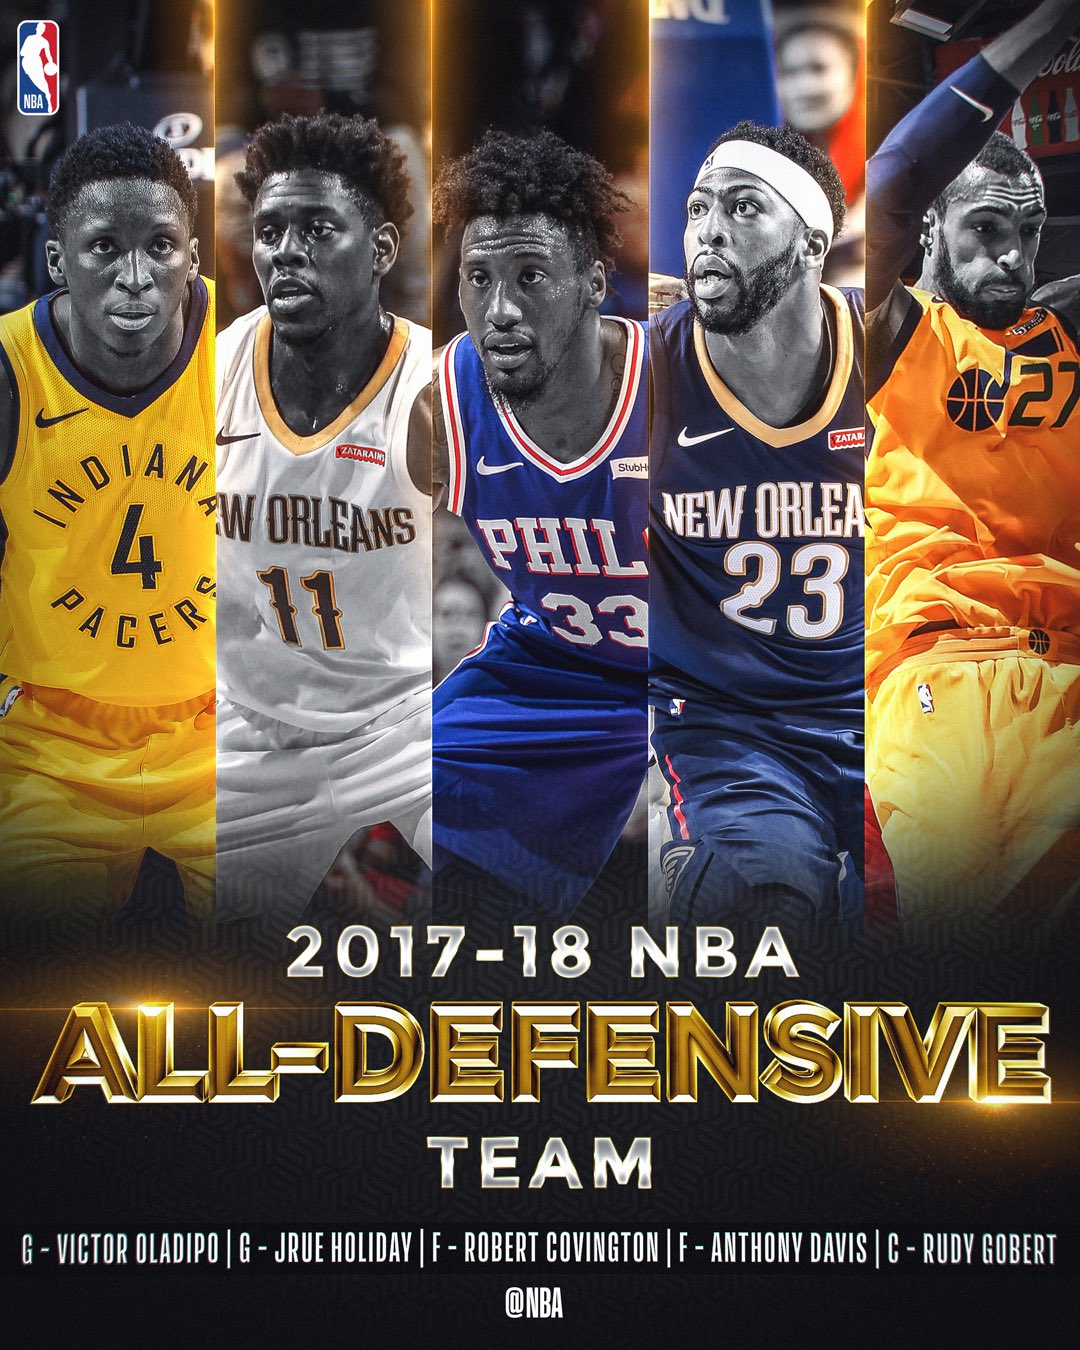 The 2017-18 NBA All-Defense First Team!   @VicOladipo  @Jrue_Holiday11  @Holla_At_Rob33  @AntDavis23  @rudygobert27 https://t.co/yk94xYliI6